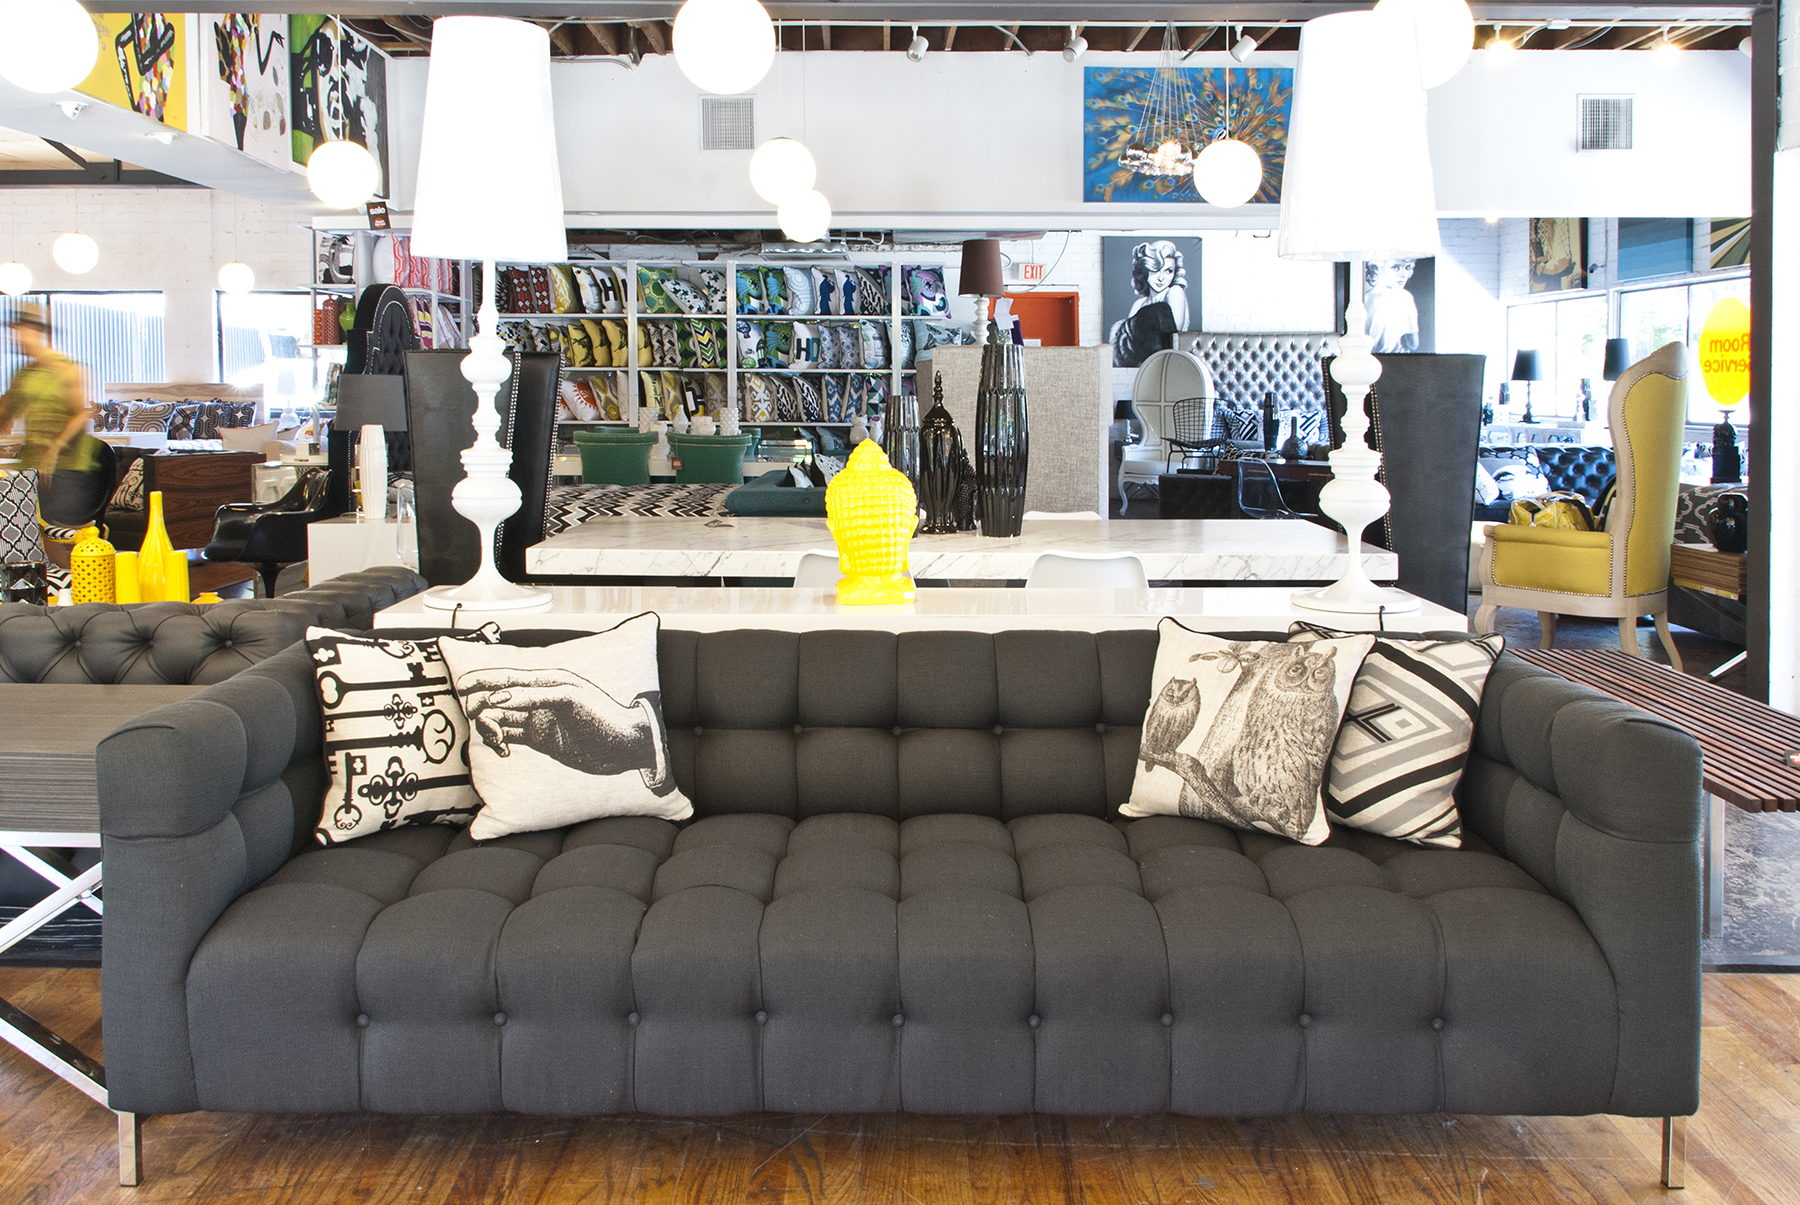 Image gallery modern furniture stores for Modern furniture retailers